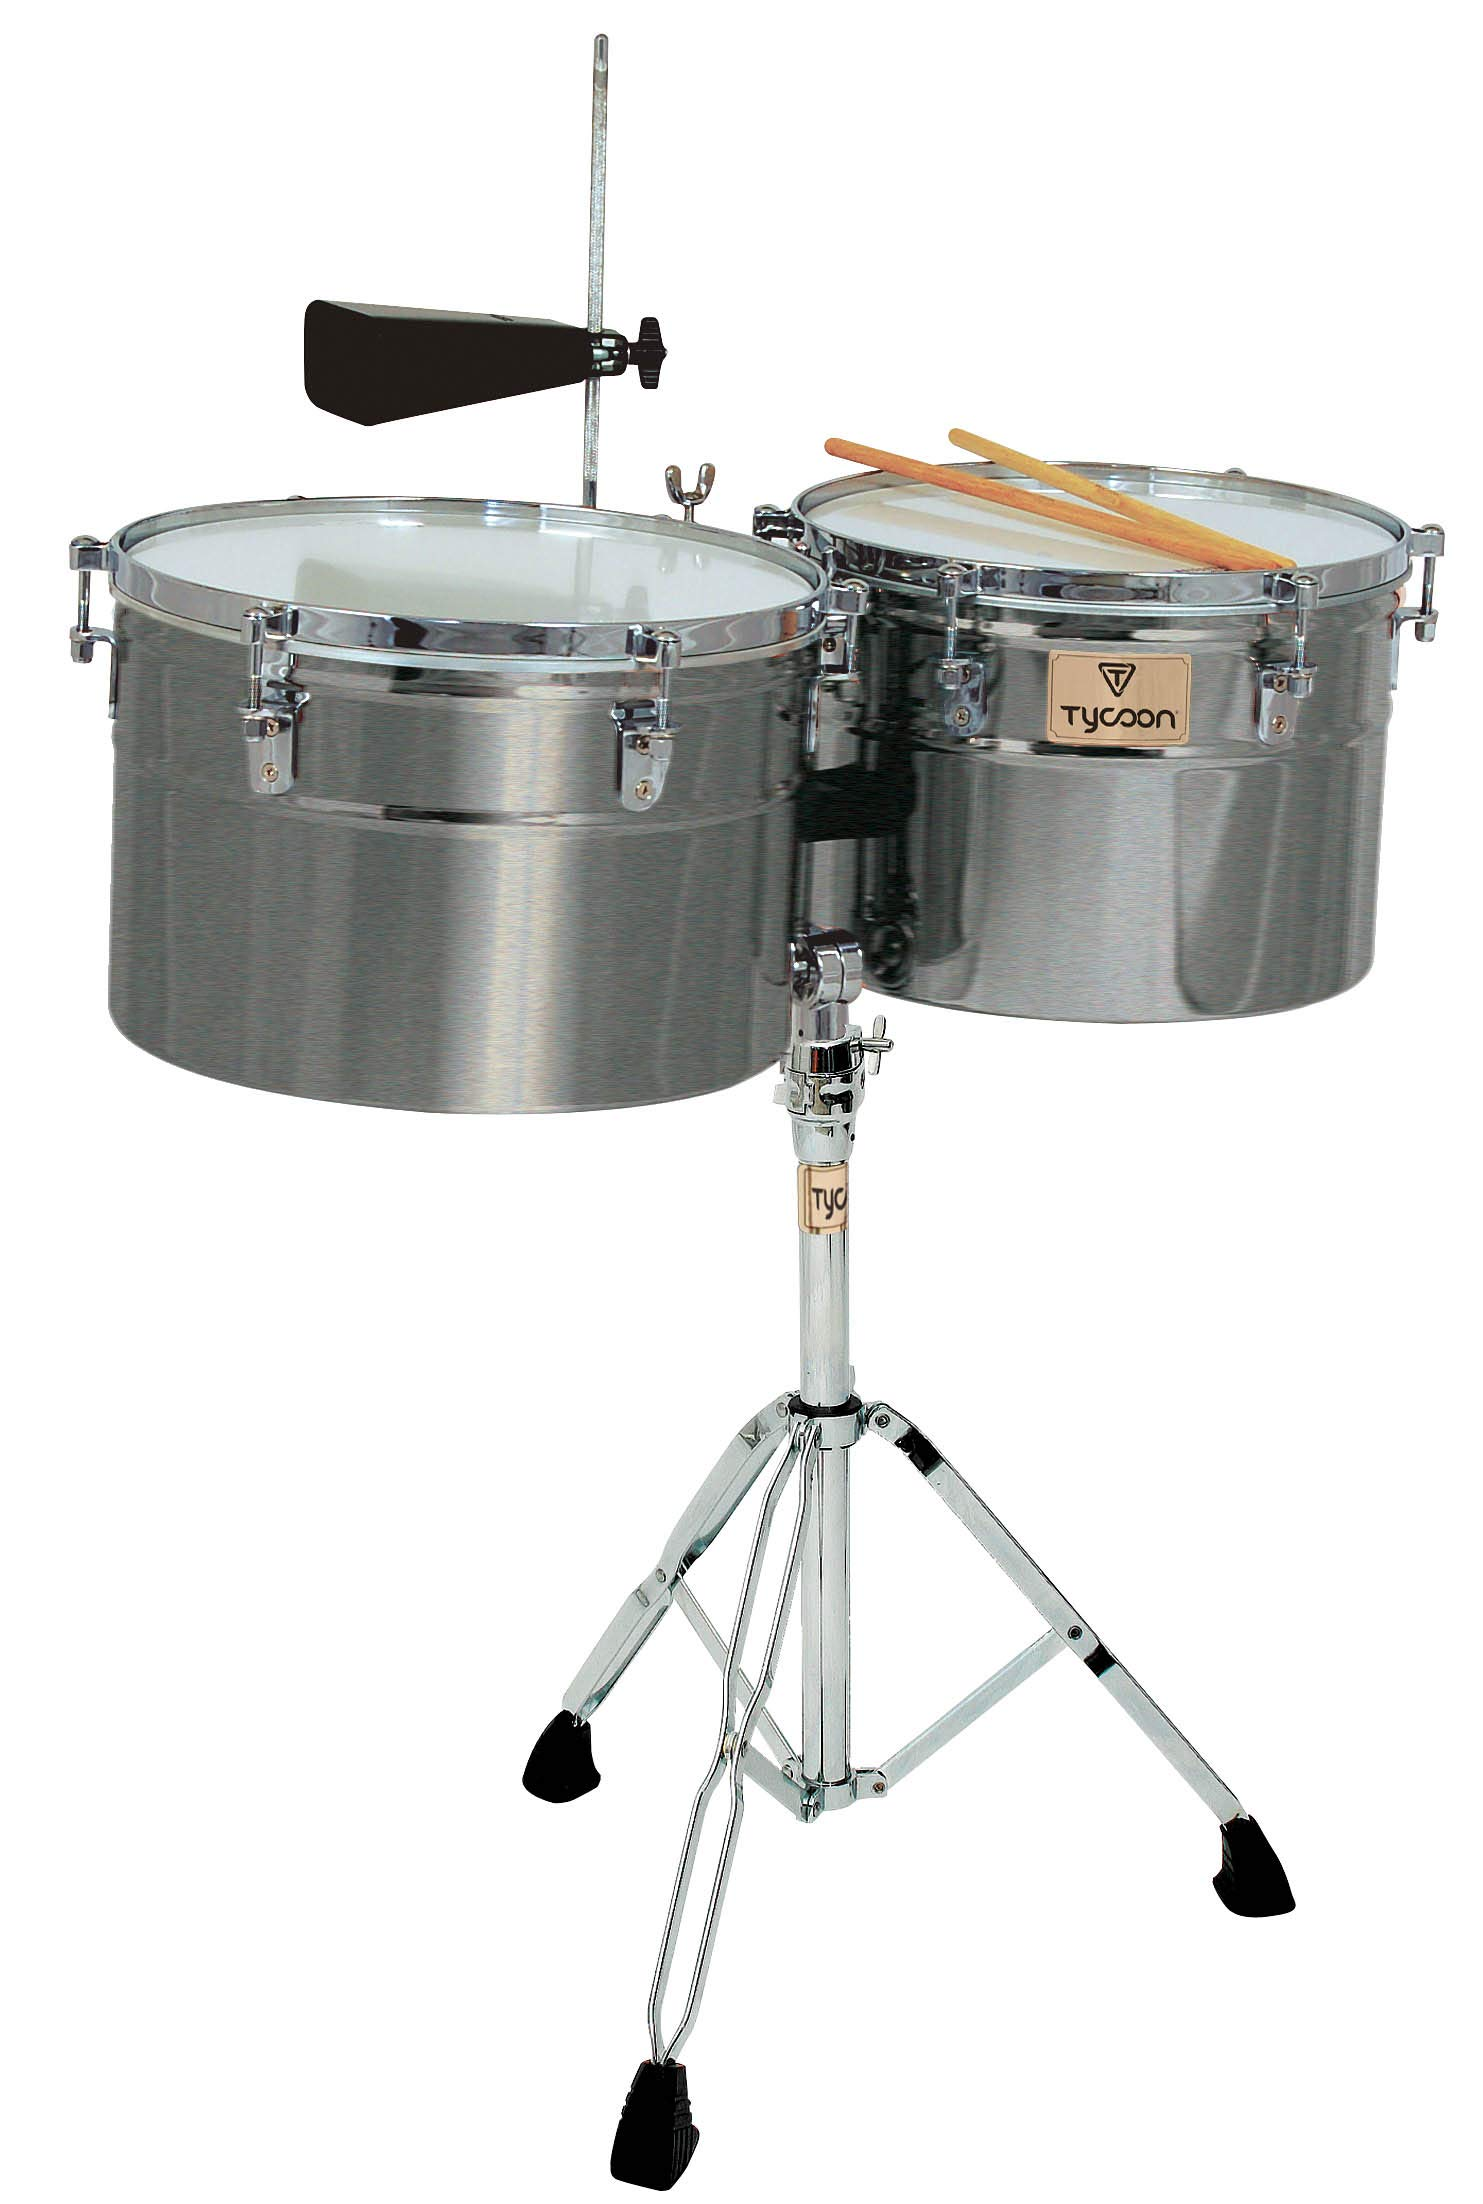 Tycoon Percussion Black Powder Coated Timbale Mambo Bell by Tycoon Percussion